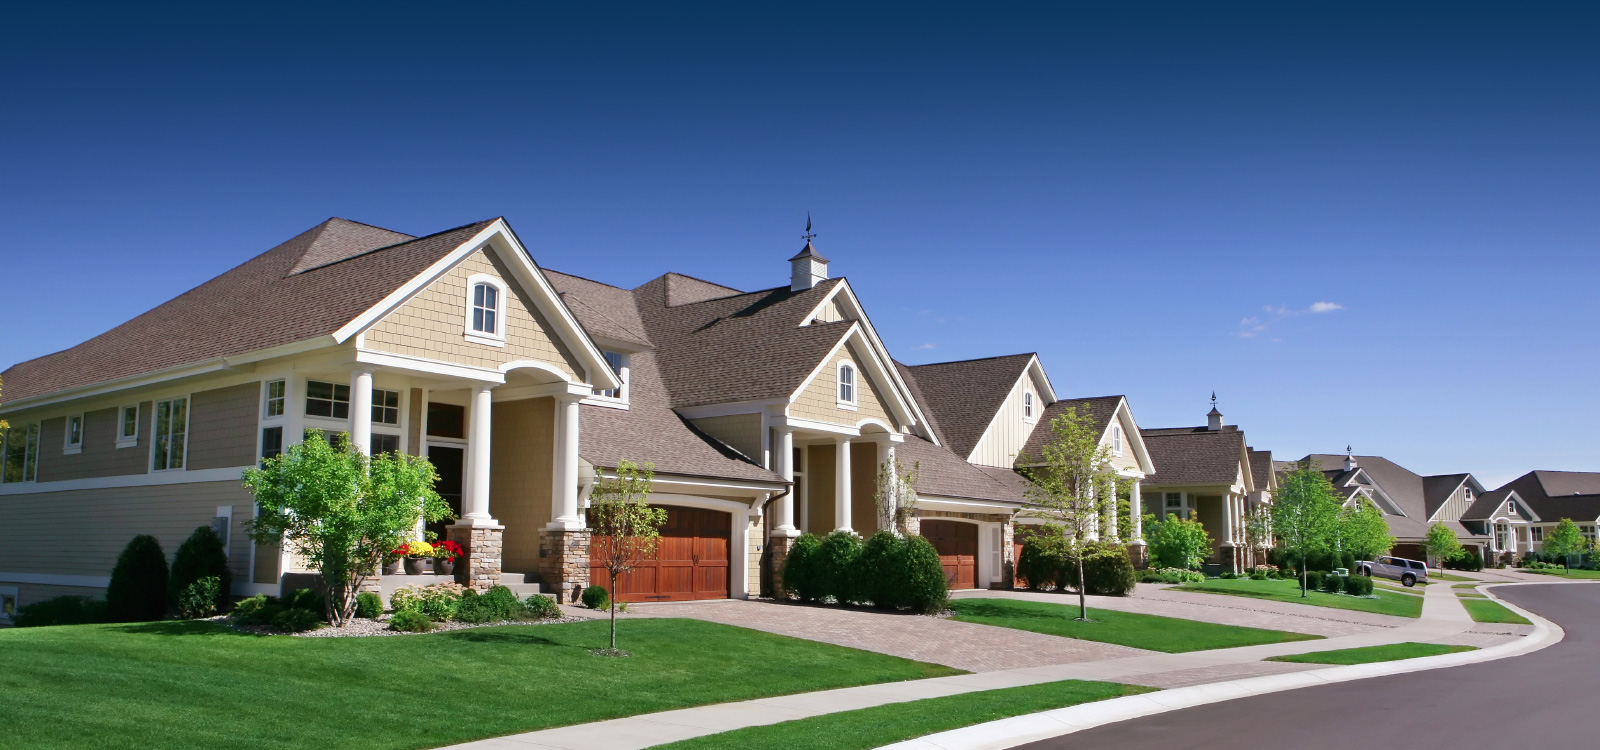 Home Inspection Checklist in Fort Worth